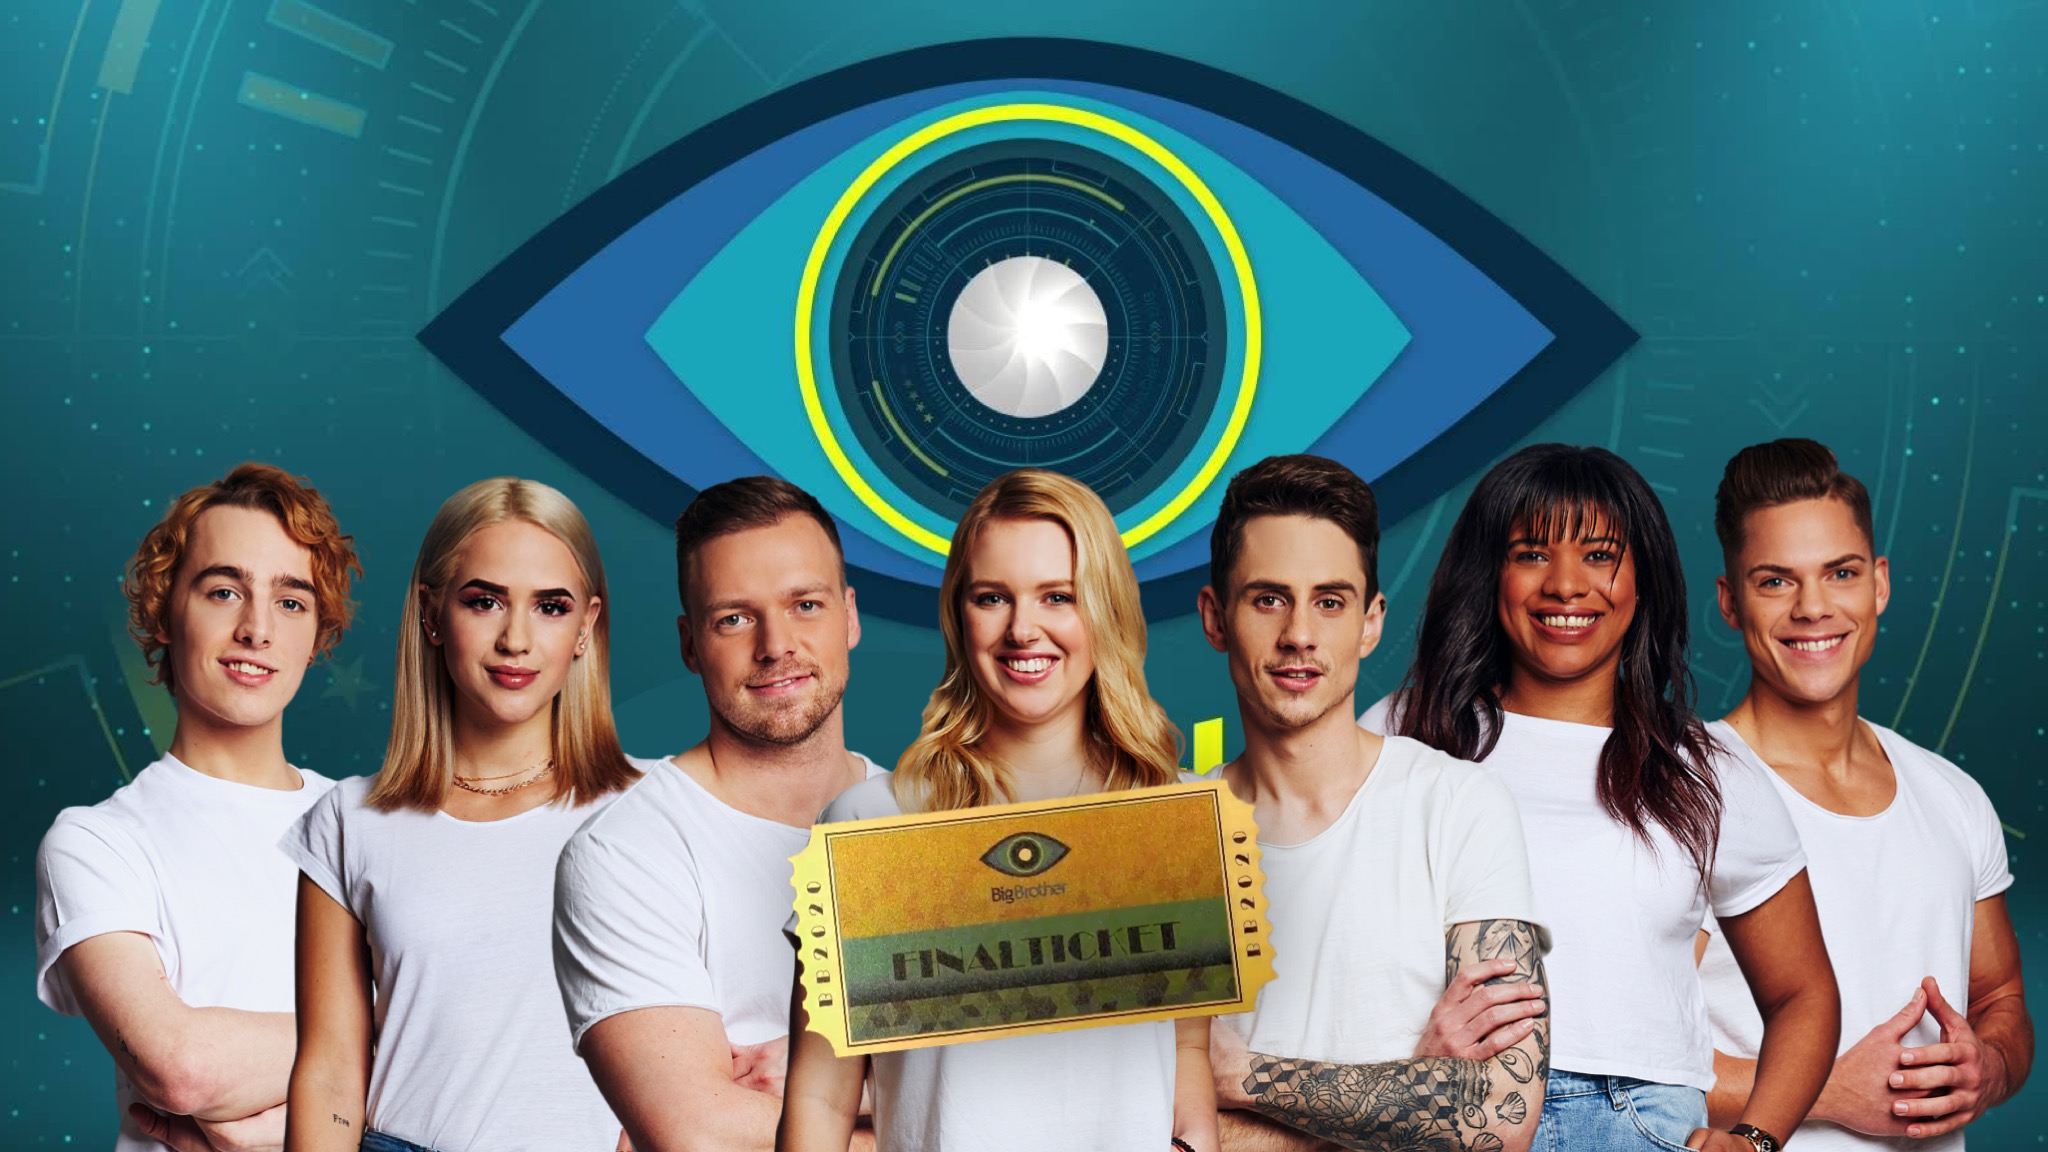 Big Brother Nominierung